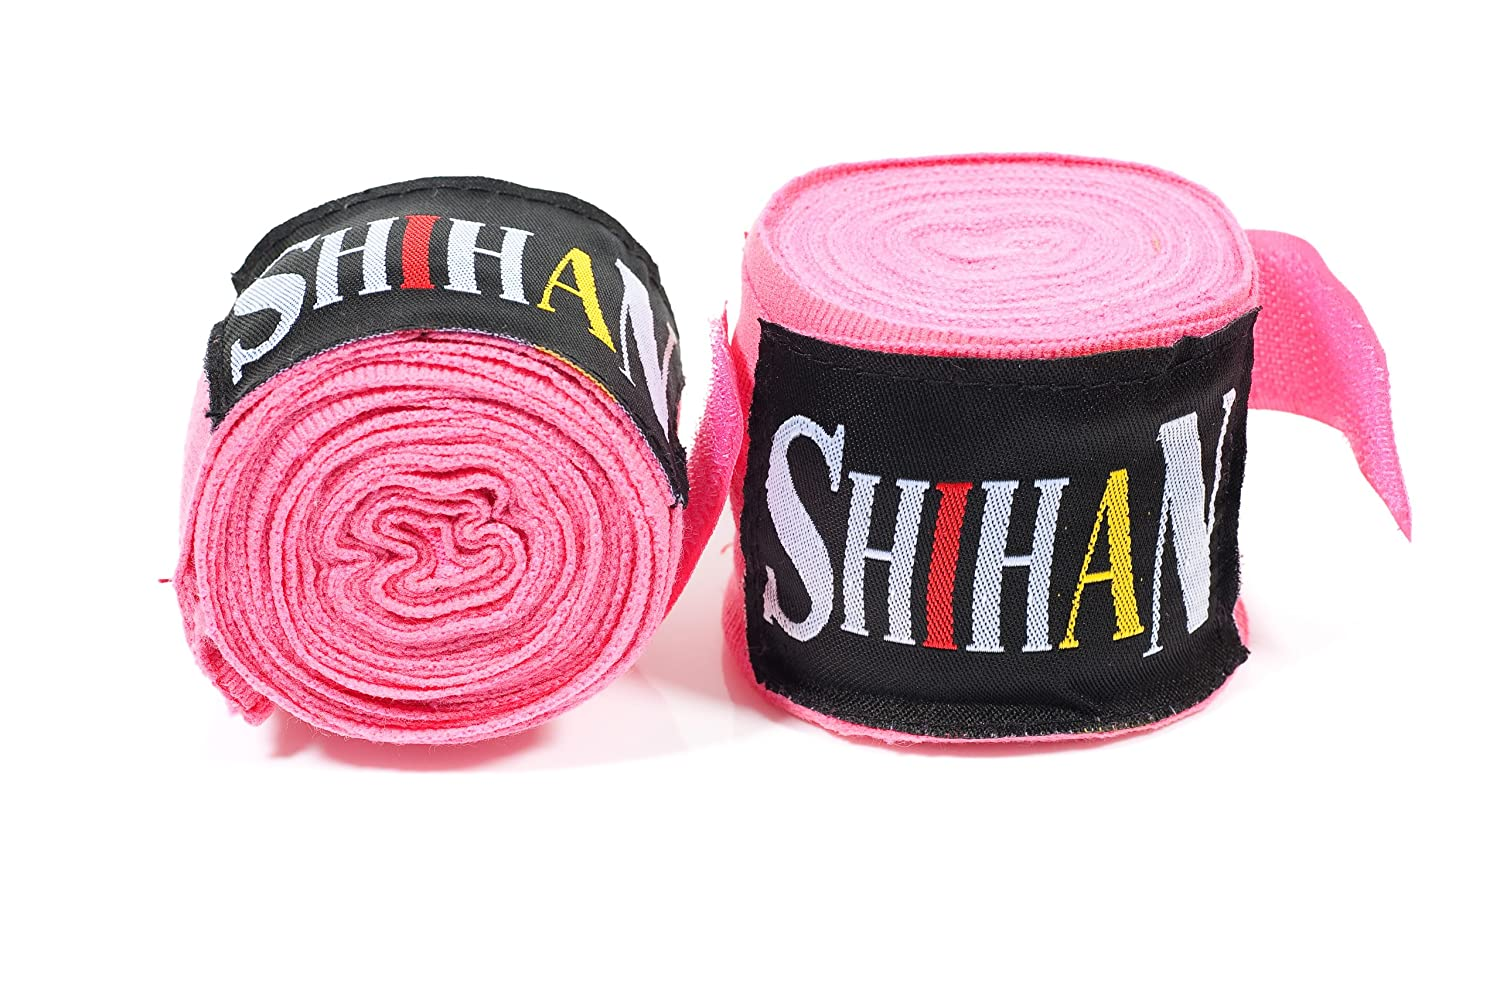 Boxing Hand Wraps - 'SHIHAN- MAX' PINK- PAIR SPECIAL PROMOTION PRICE диск replikey opel astra turbo zafira turbo rk5089 7xr17 5x115 мм et41 bkf